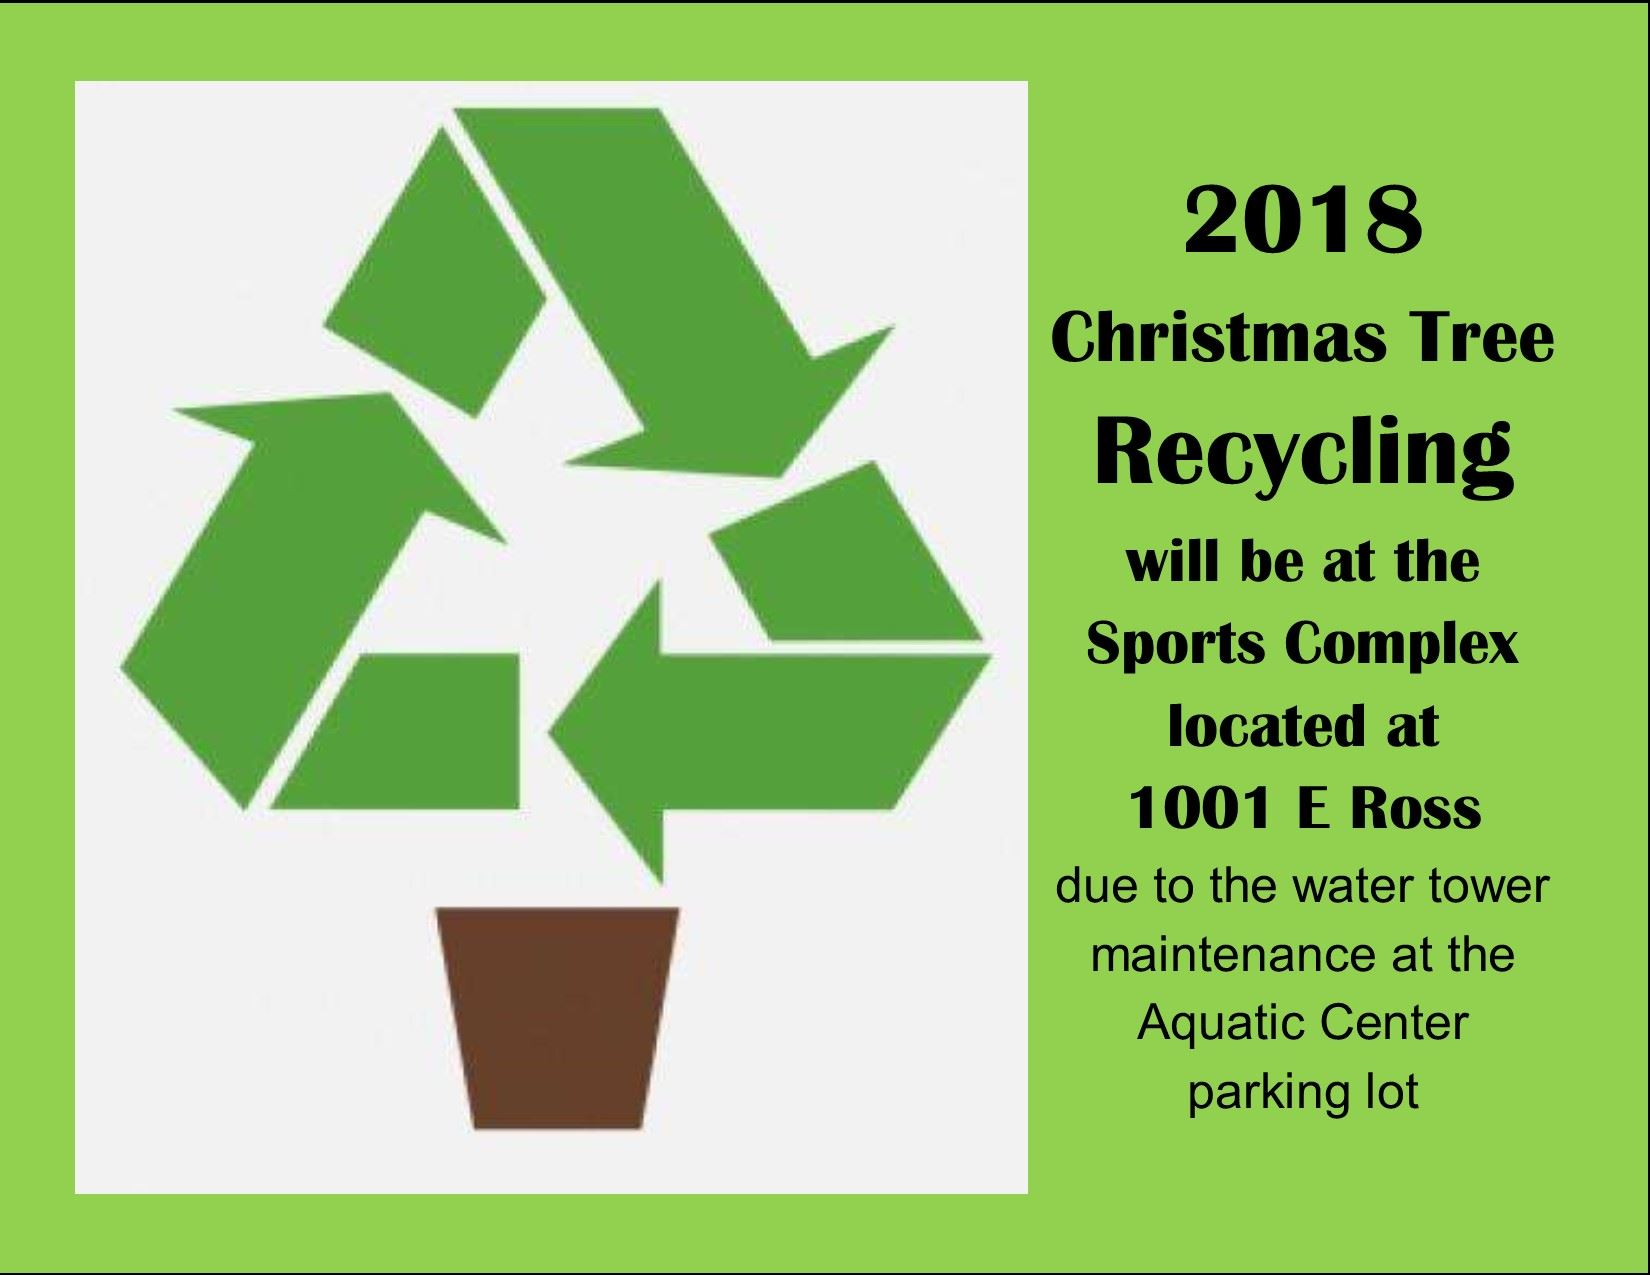 Christmas Tree Recycling 2018